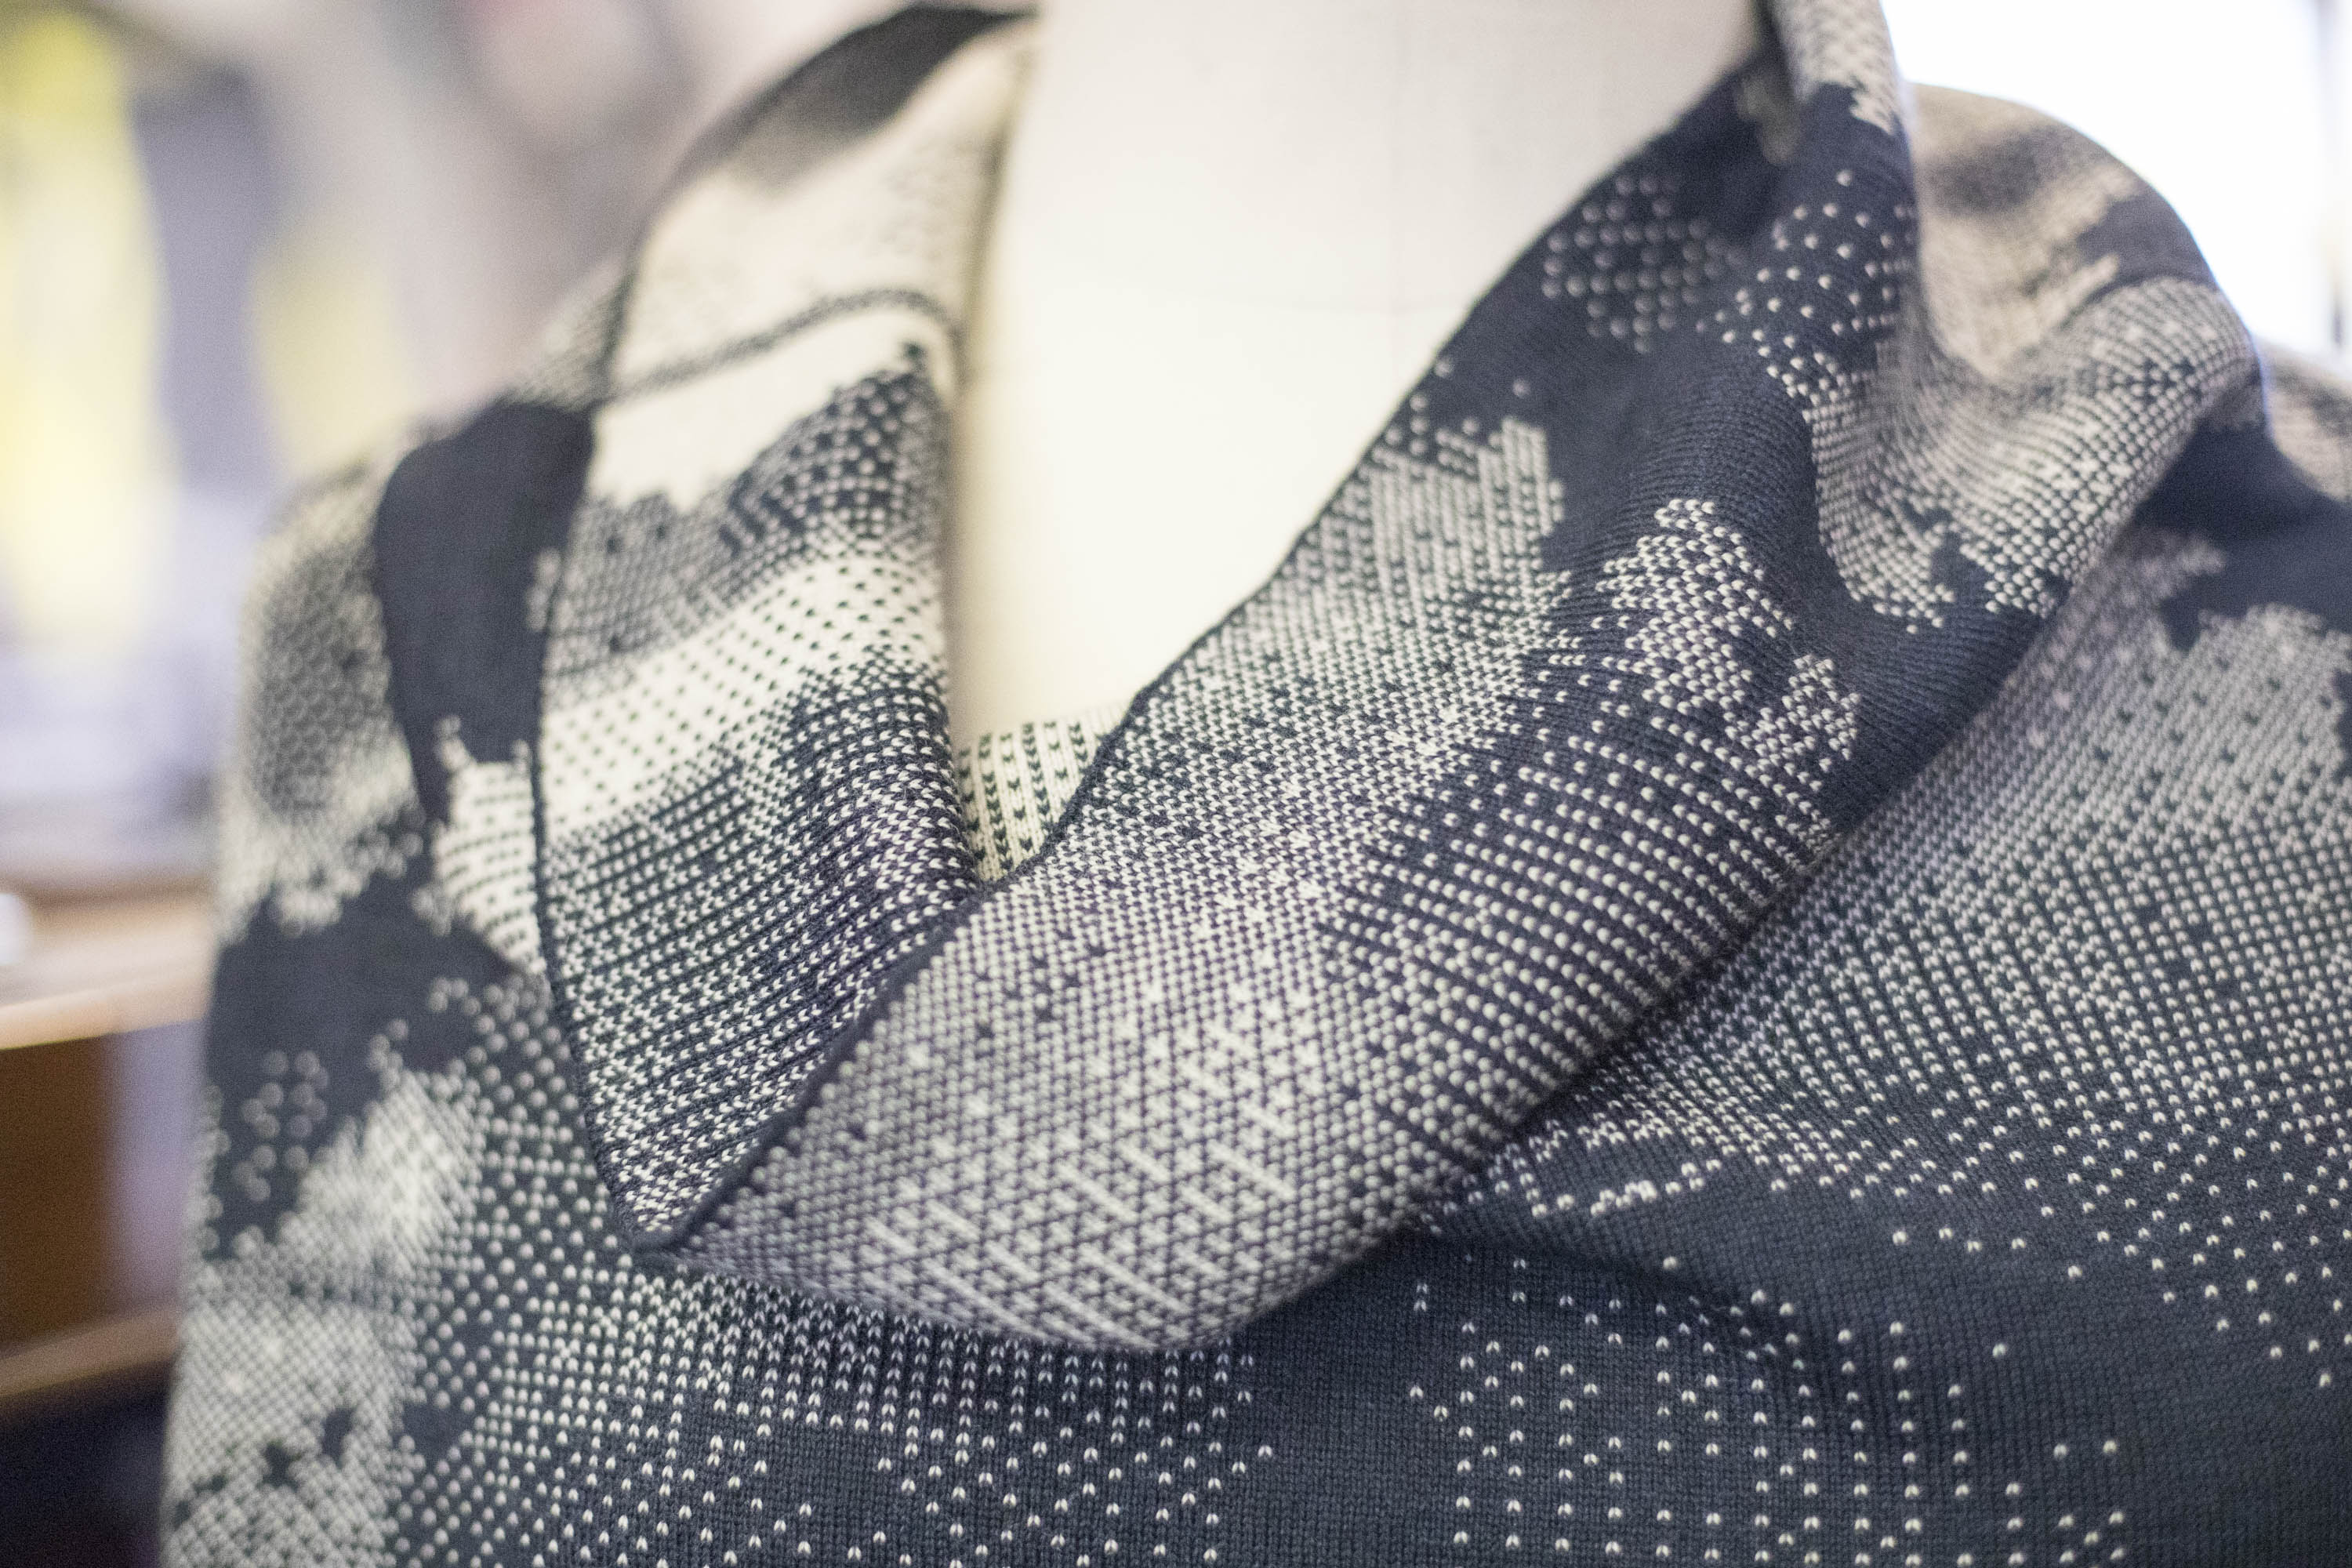 Detail of a contemporary Scottish knitted jumper. Cowl neck in inky blue and antique white, with abstract patterning